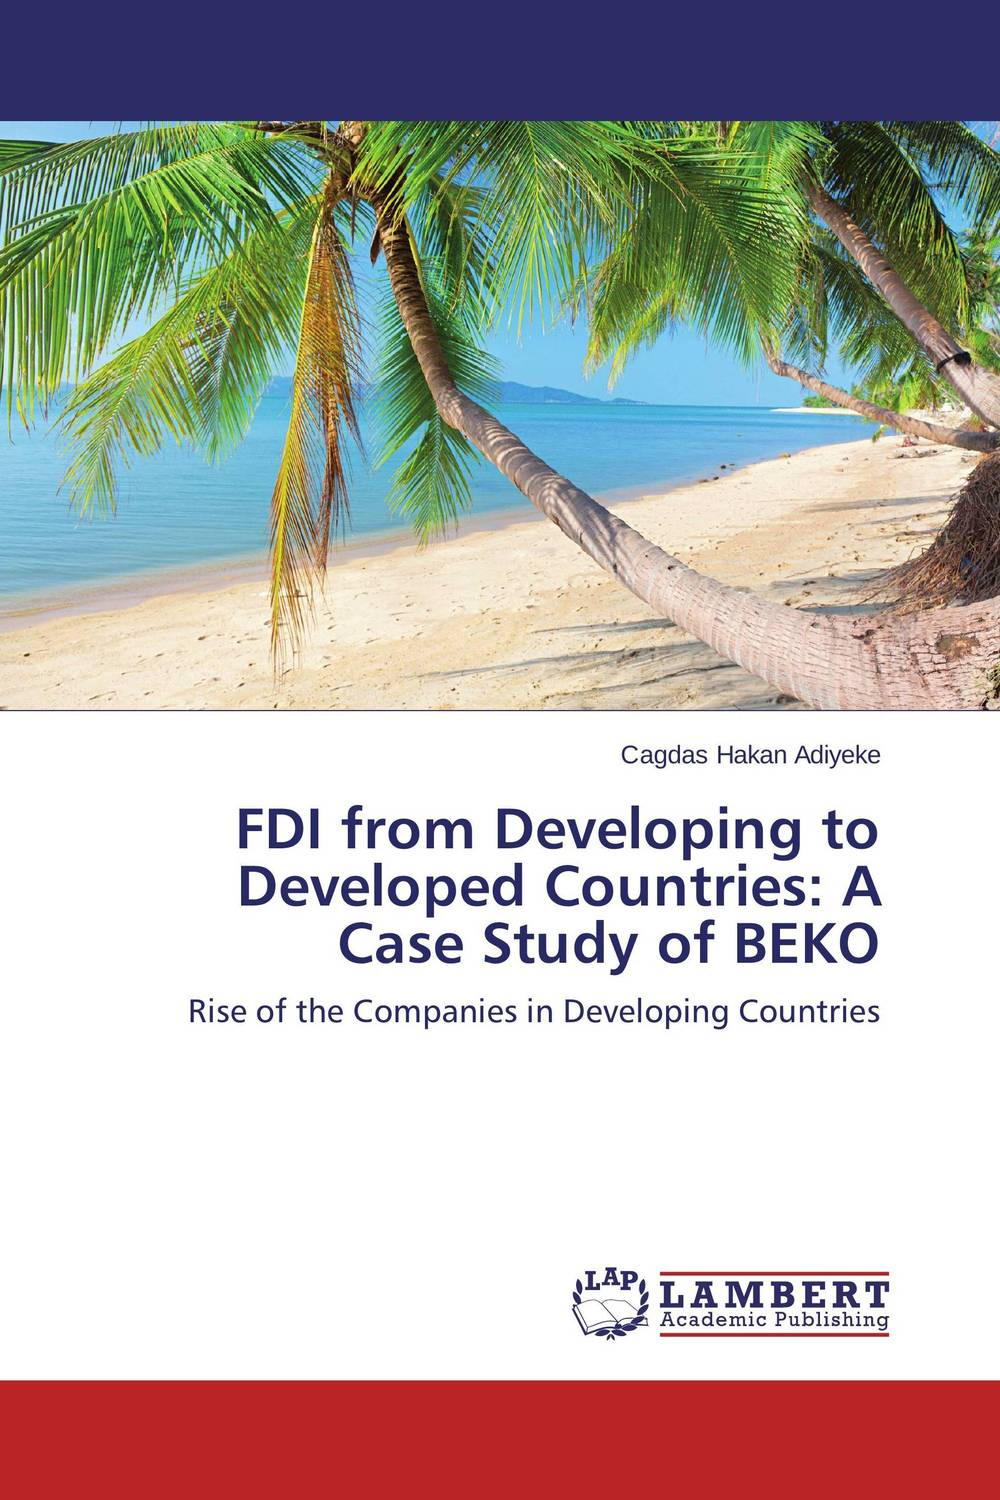 FDI from Developing to Developed Countries: A Case Study of BEKO me and my place in space